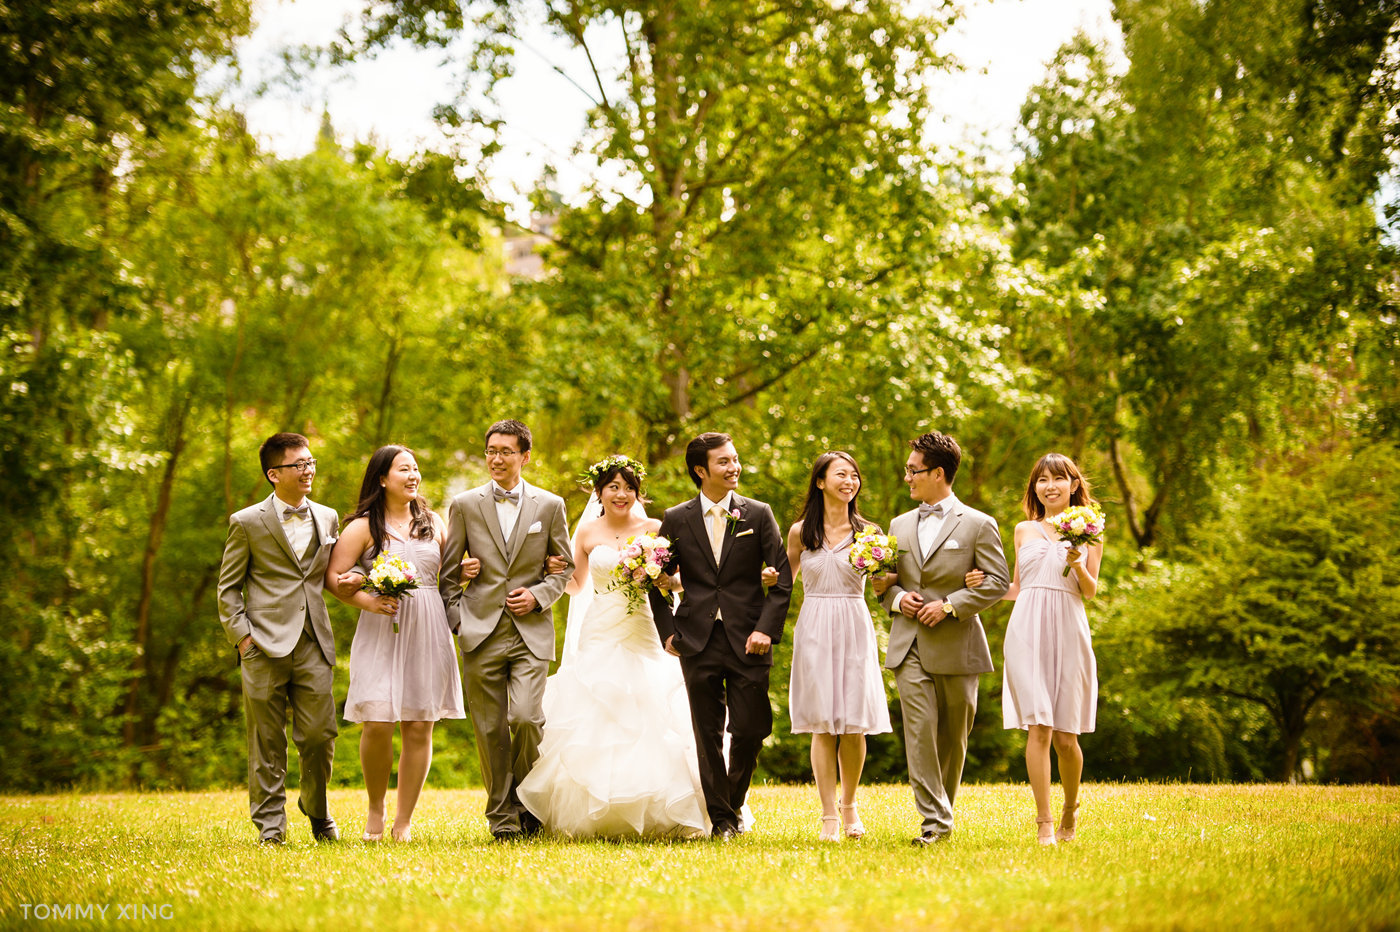 Seattle Wedding and pre wedding Los Angeles Tommy Xing Photography 西雅图洛杉矶旧金山婚礼婚纱照摄影师 113.jpg